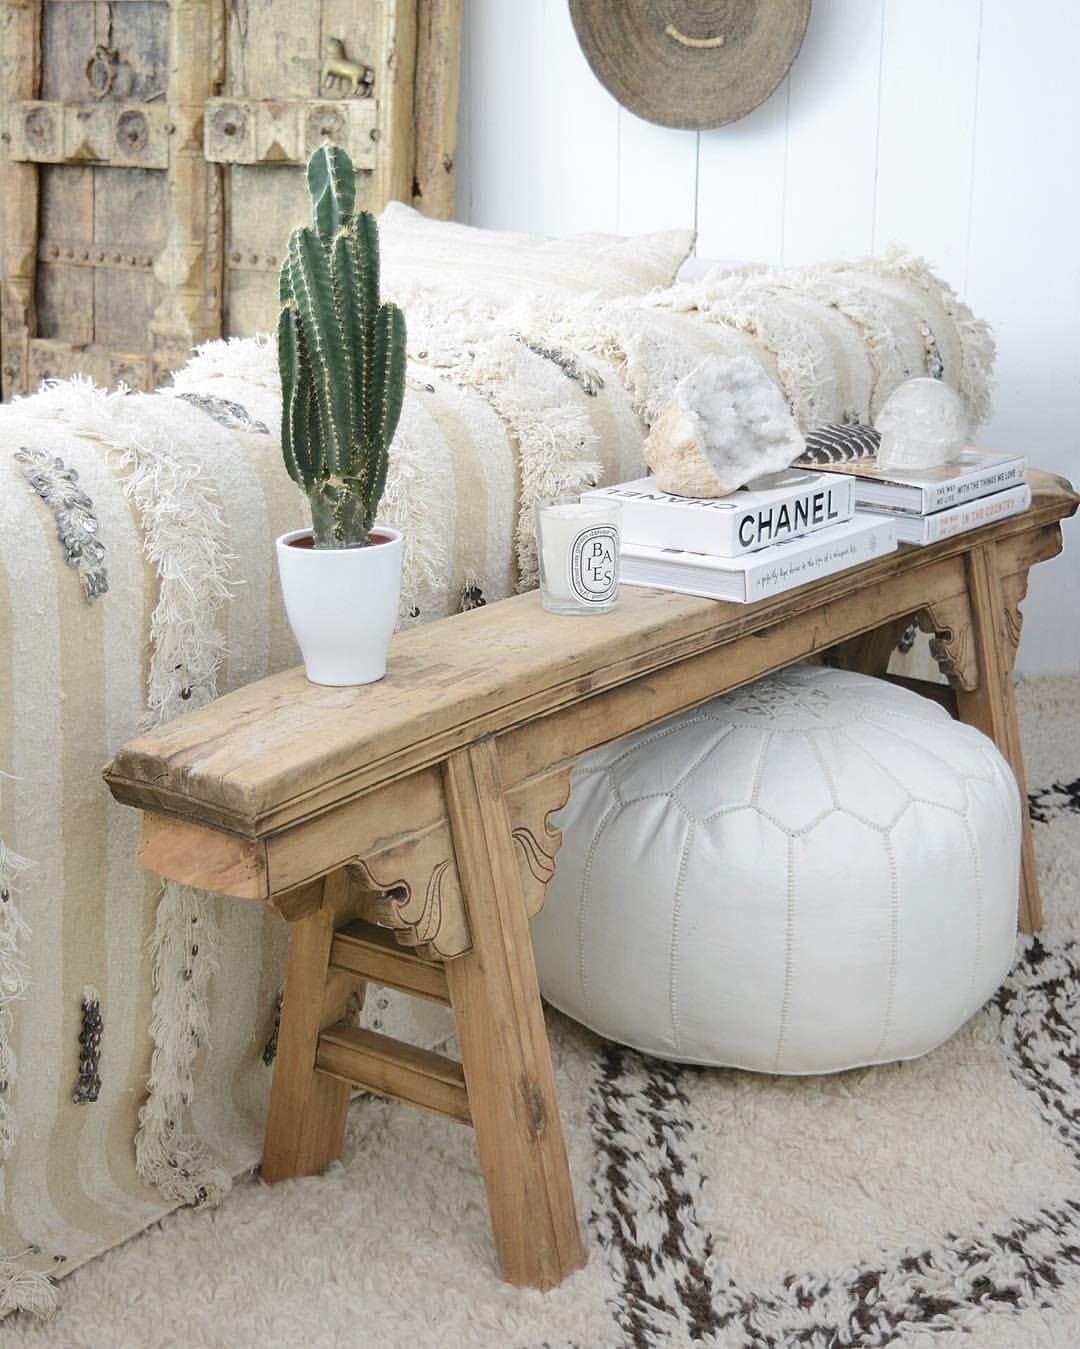 Zambian wedding decorations  chinese altar tablebench moroccan pouf moroccan beni ourain rug